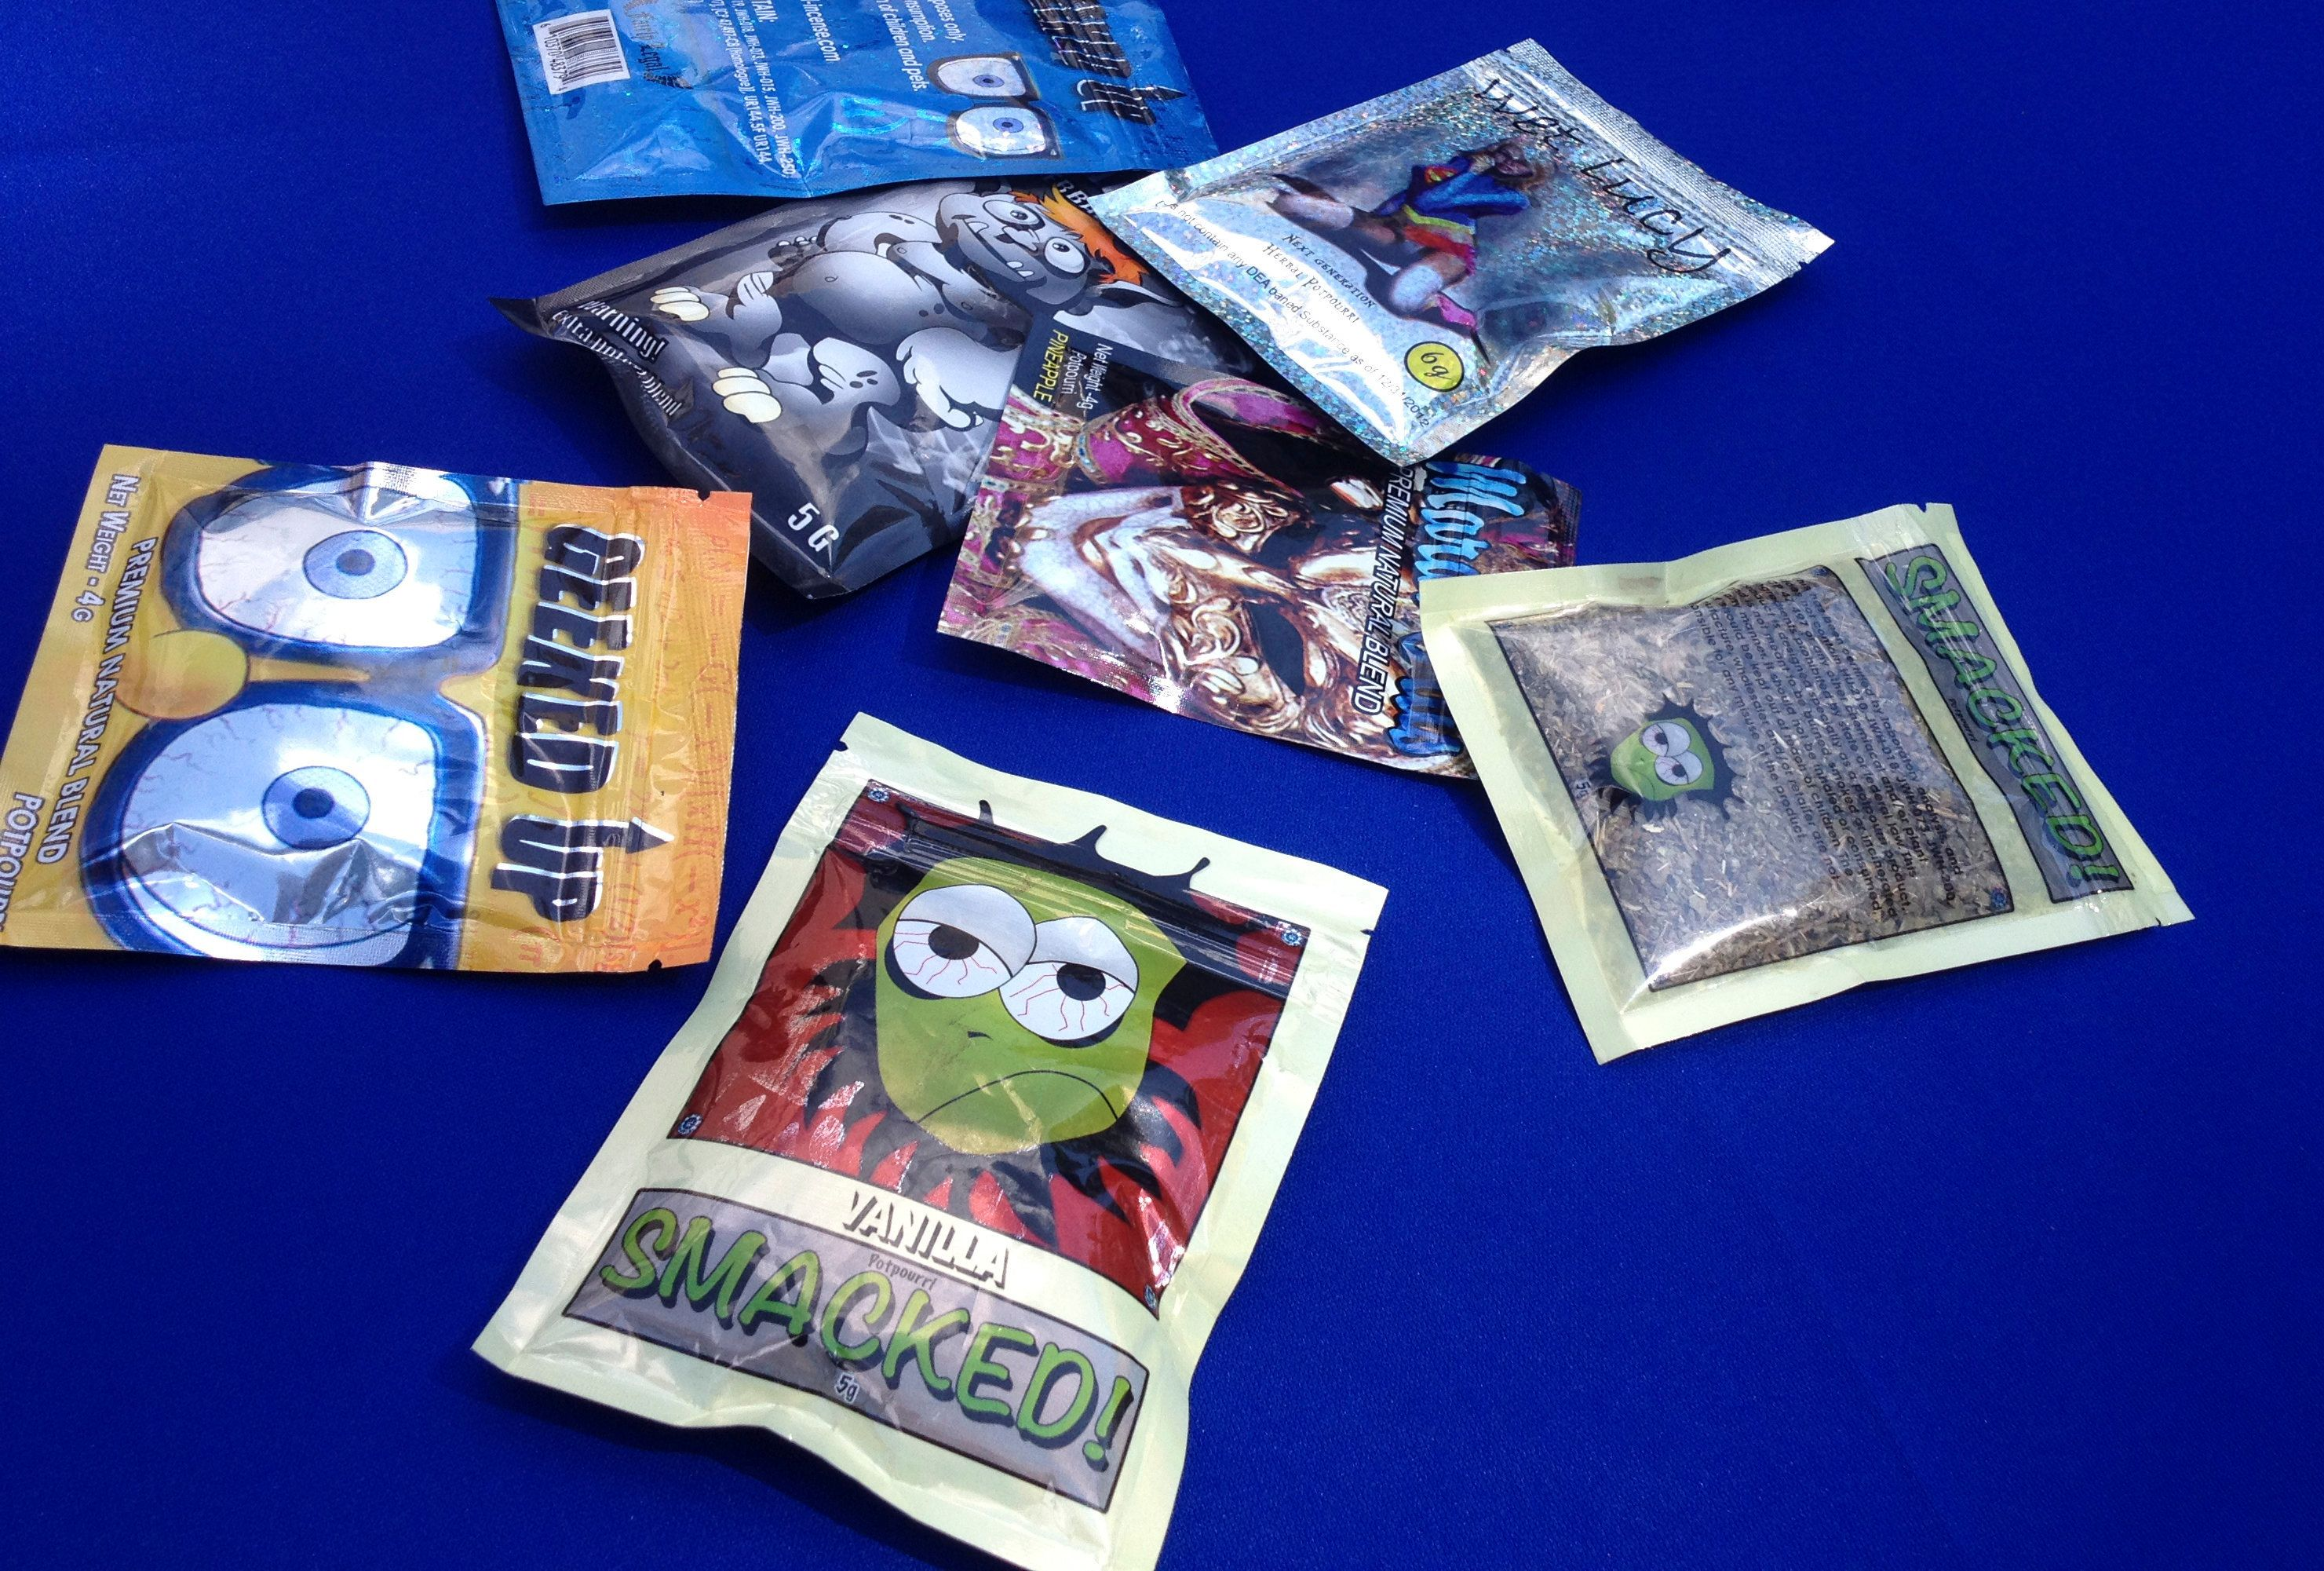 Packets of synthetic marijuana illegally sold in New York City are put on display at a news conference held by New York state Senator Jeff Klein in New York, August 12, 2015.